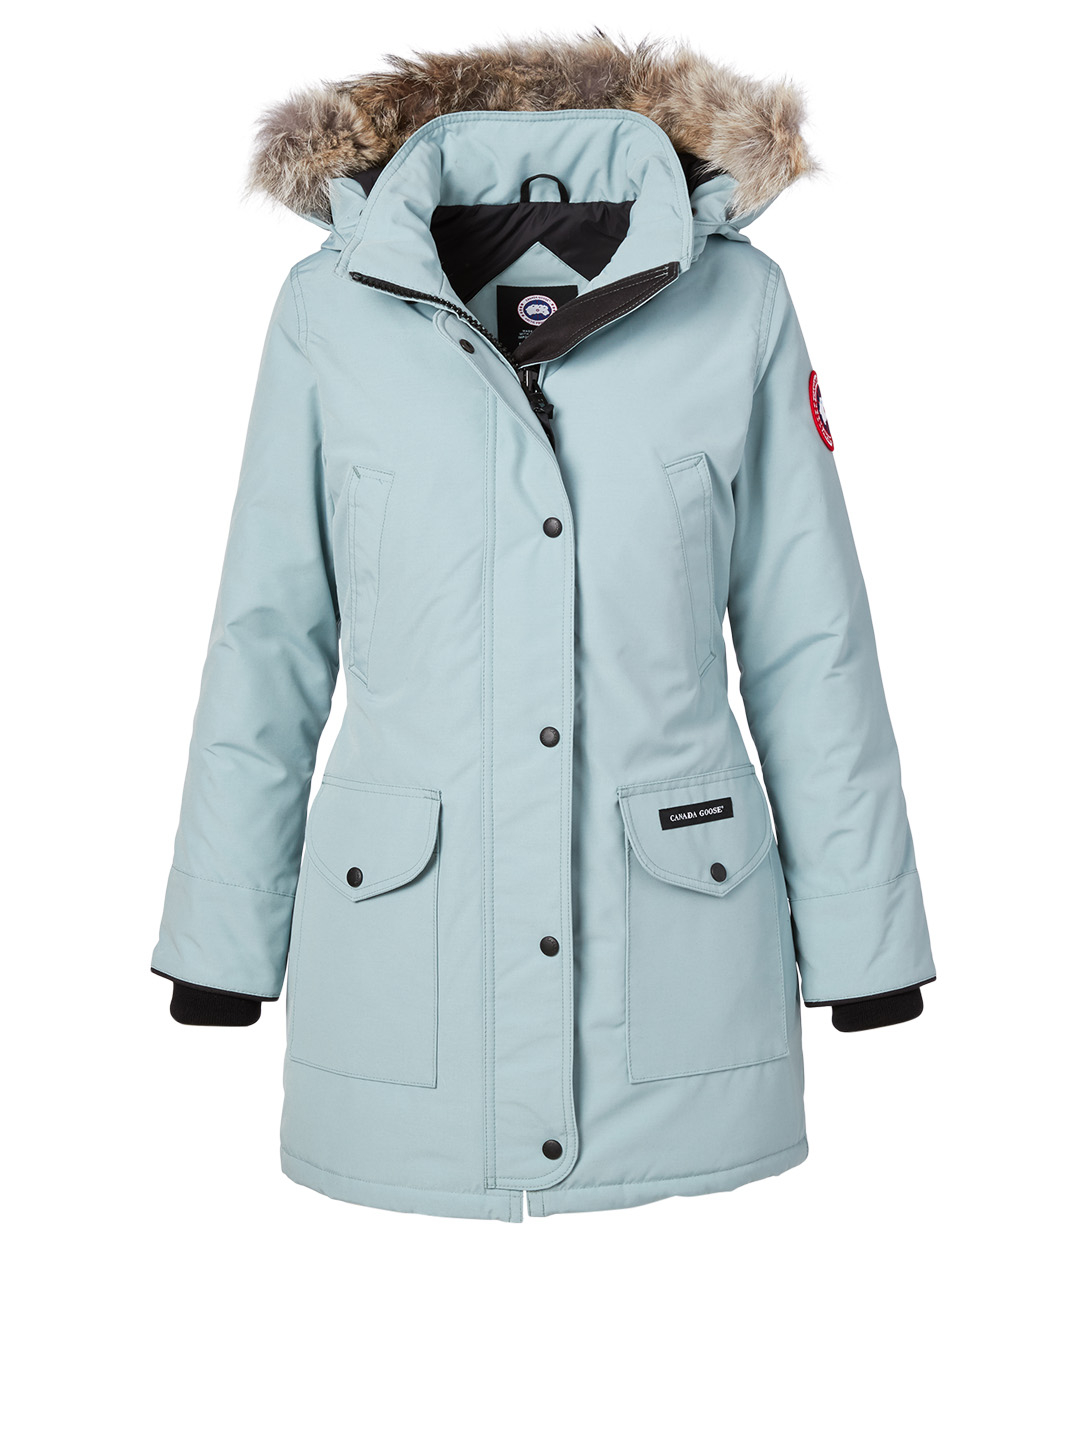 CANADA GOOSE Trillium Down Parka With Fur Hood - Fusion Fit Women's Blue